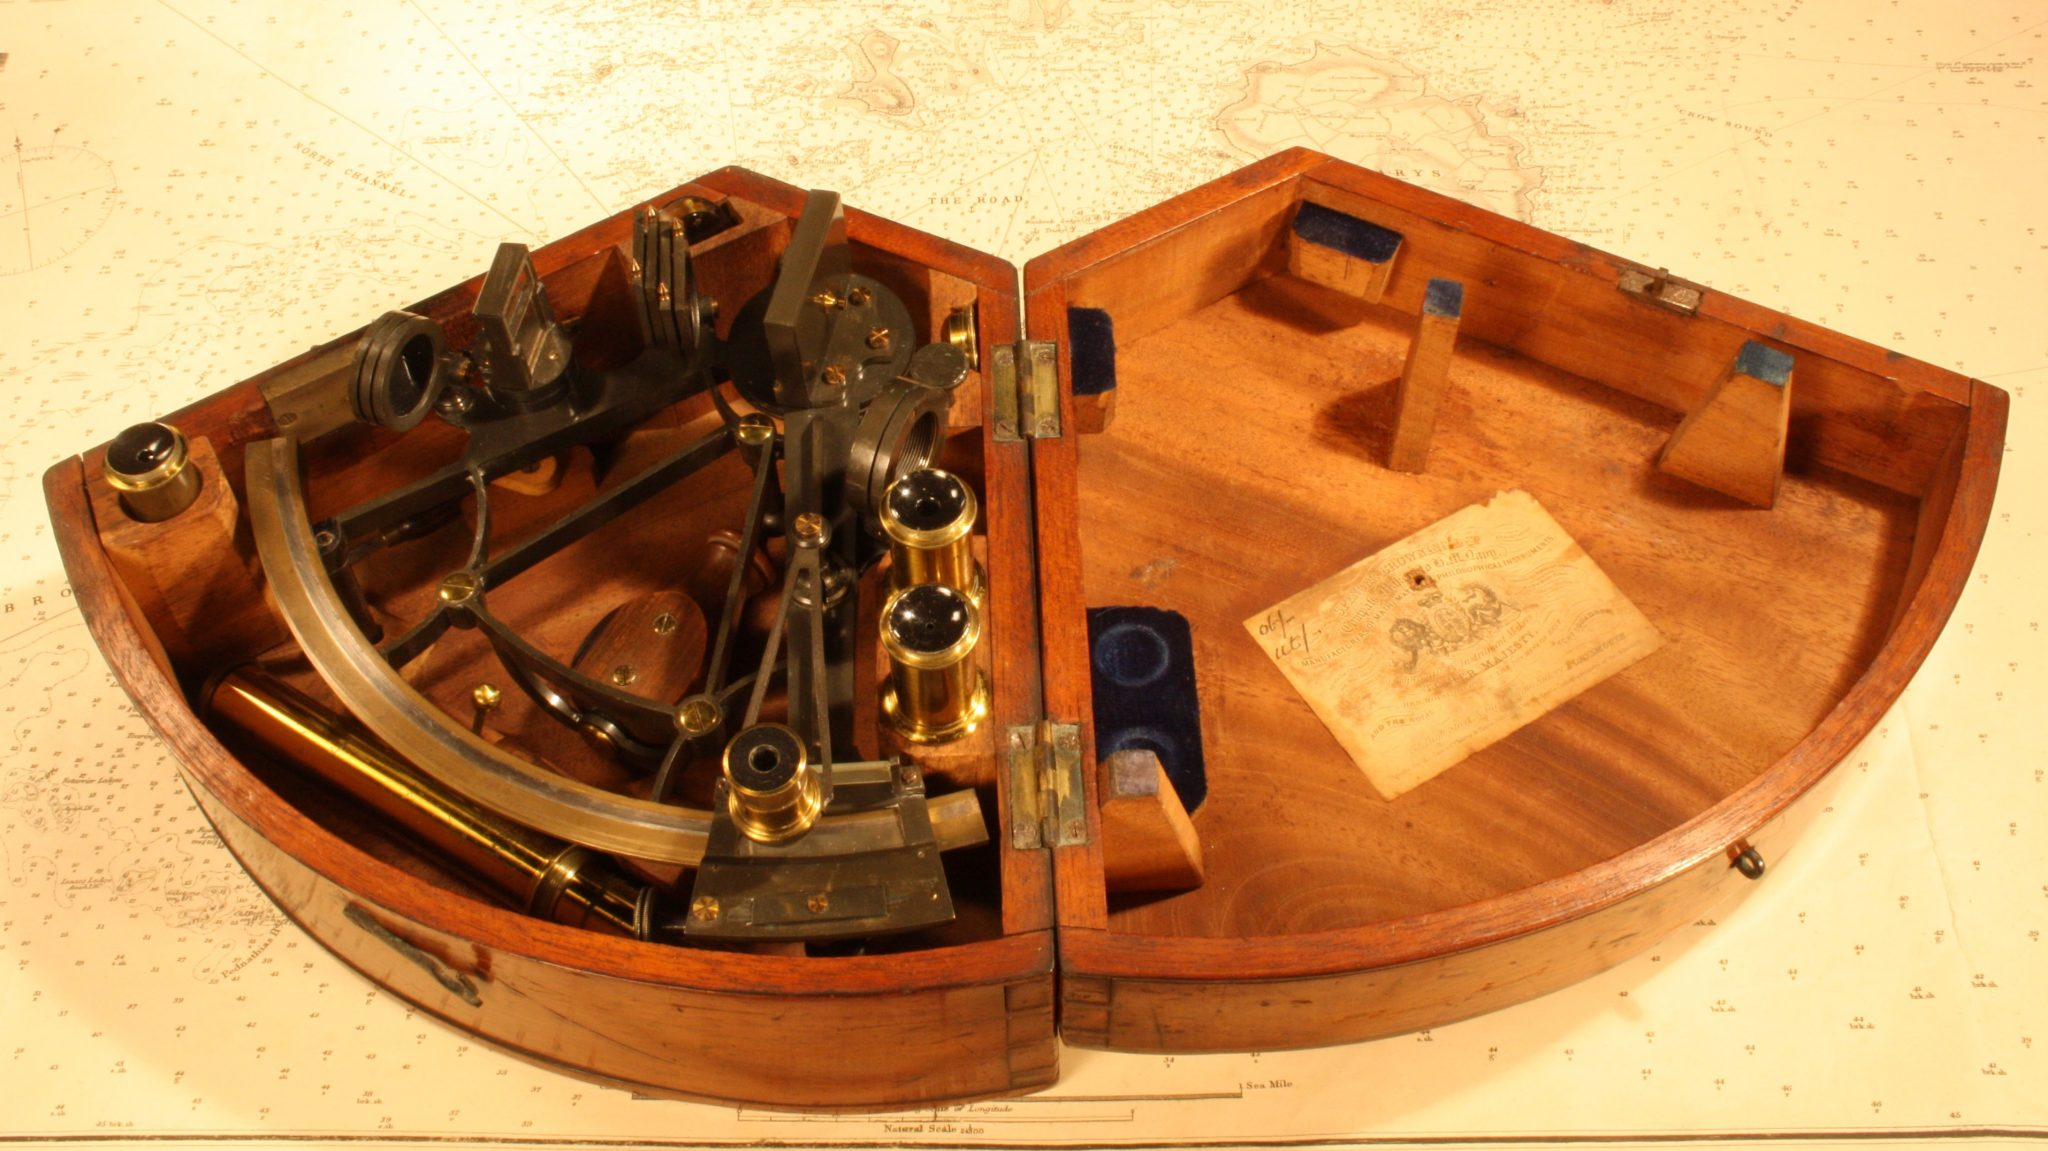 Image of Spencer Browning Sextant